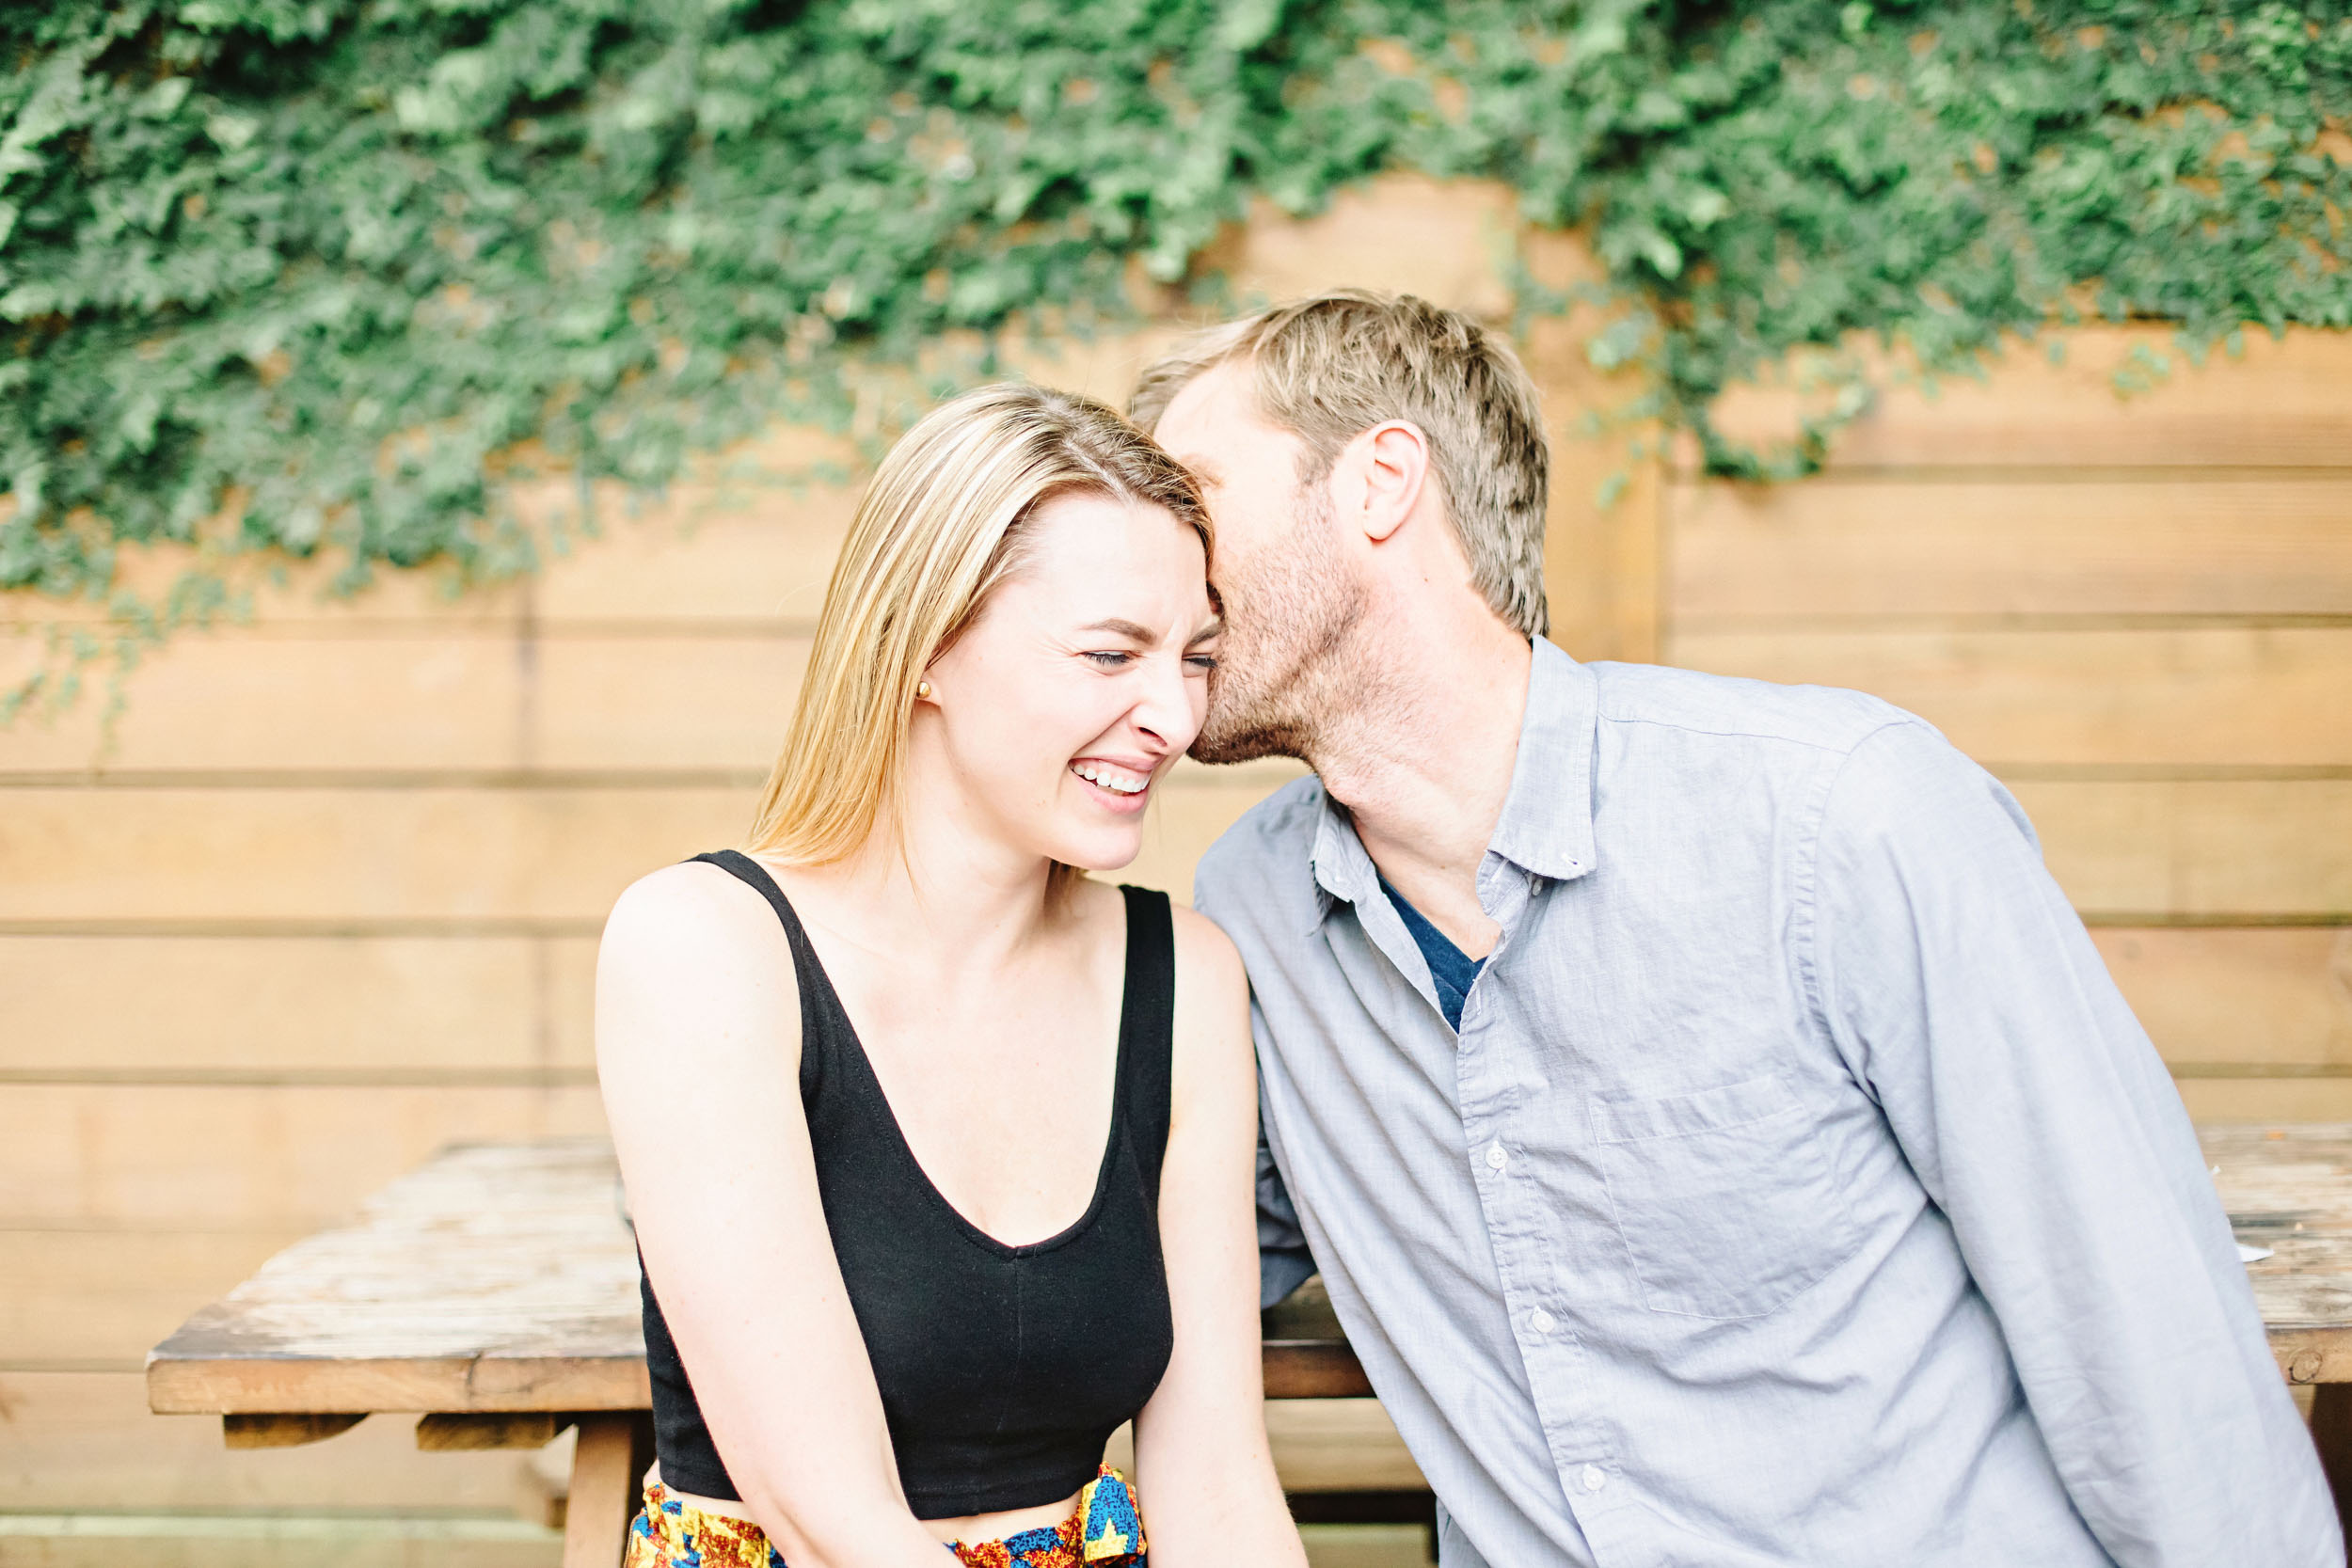 Cassie Schott Photography_Houston and Chicago Portrait Photographer_Engagement Sessions and Anniversary Sessions_375.jpg